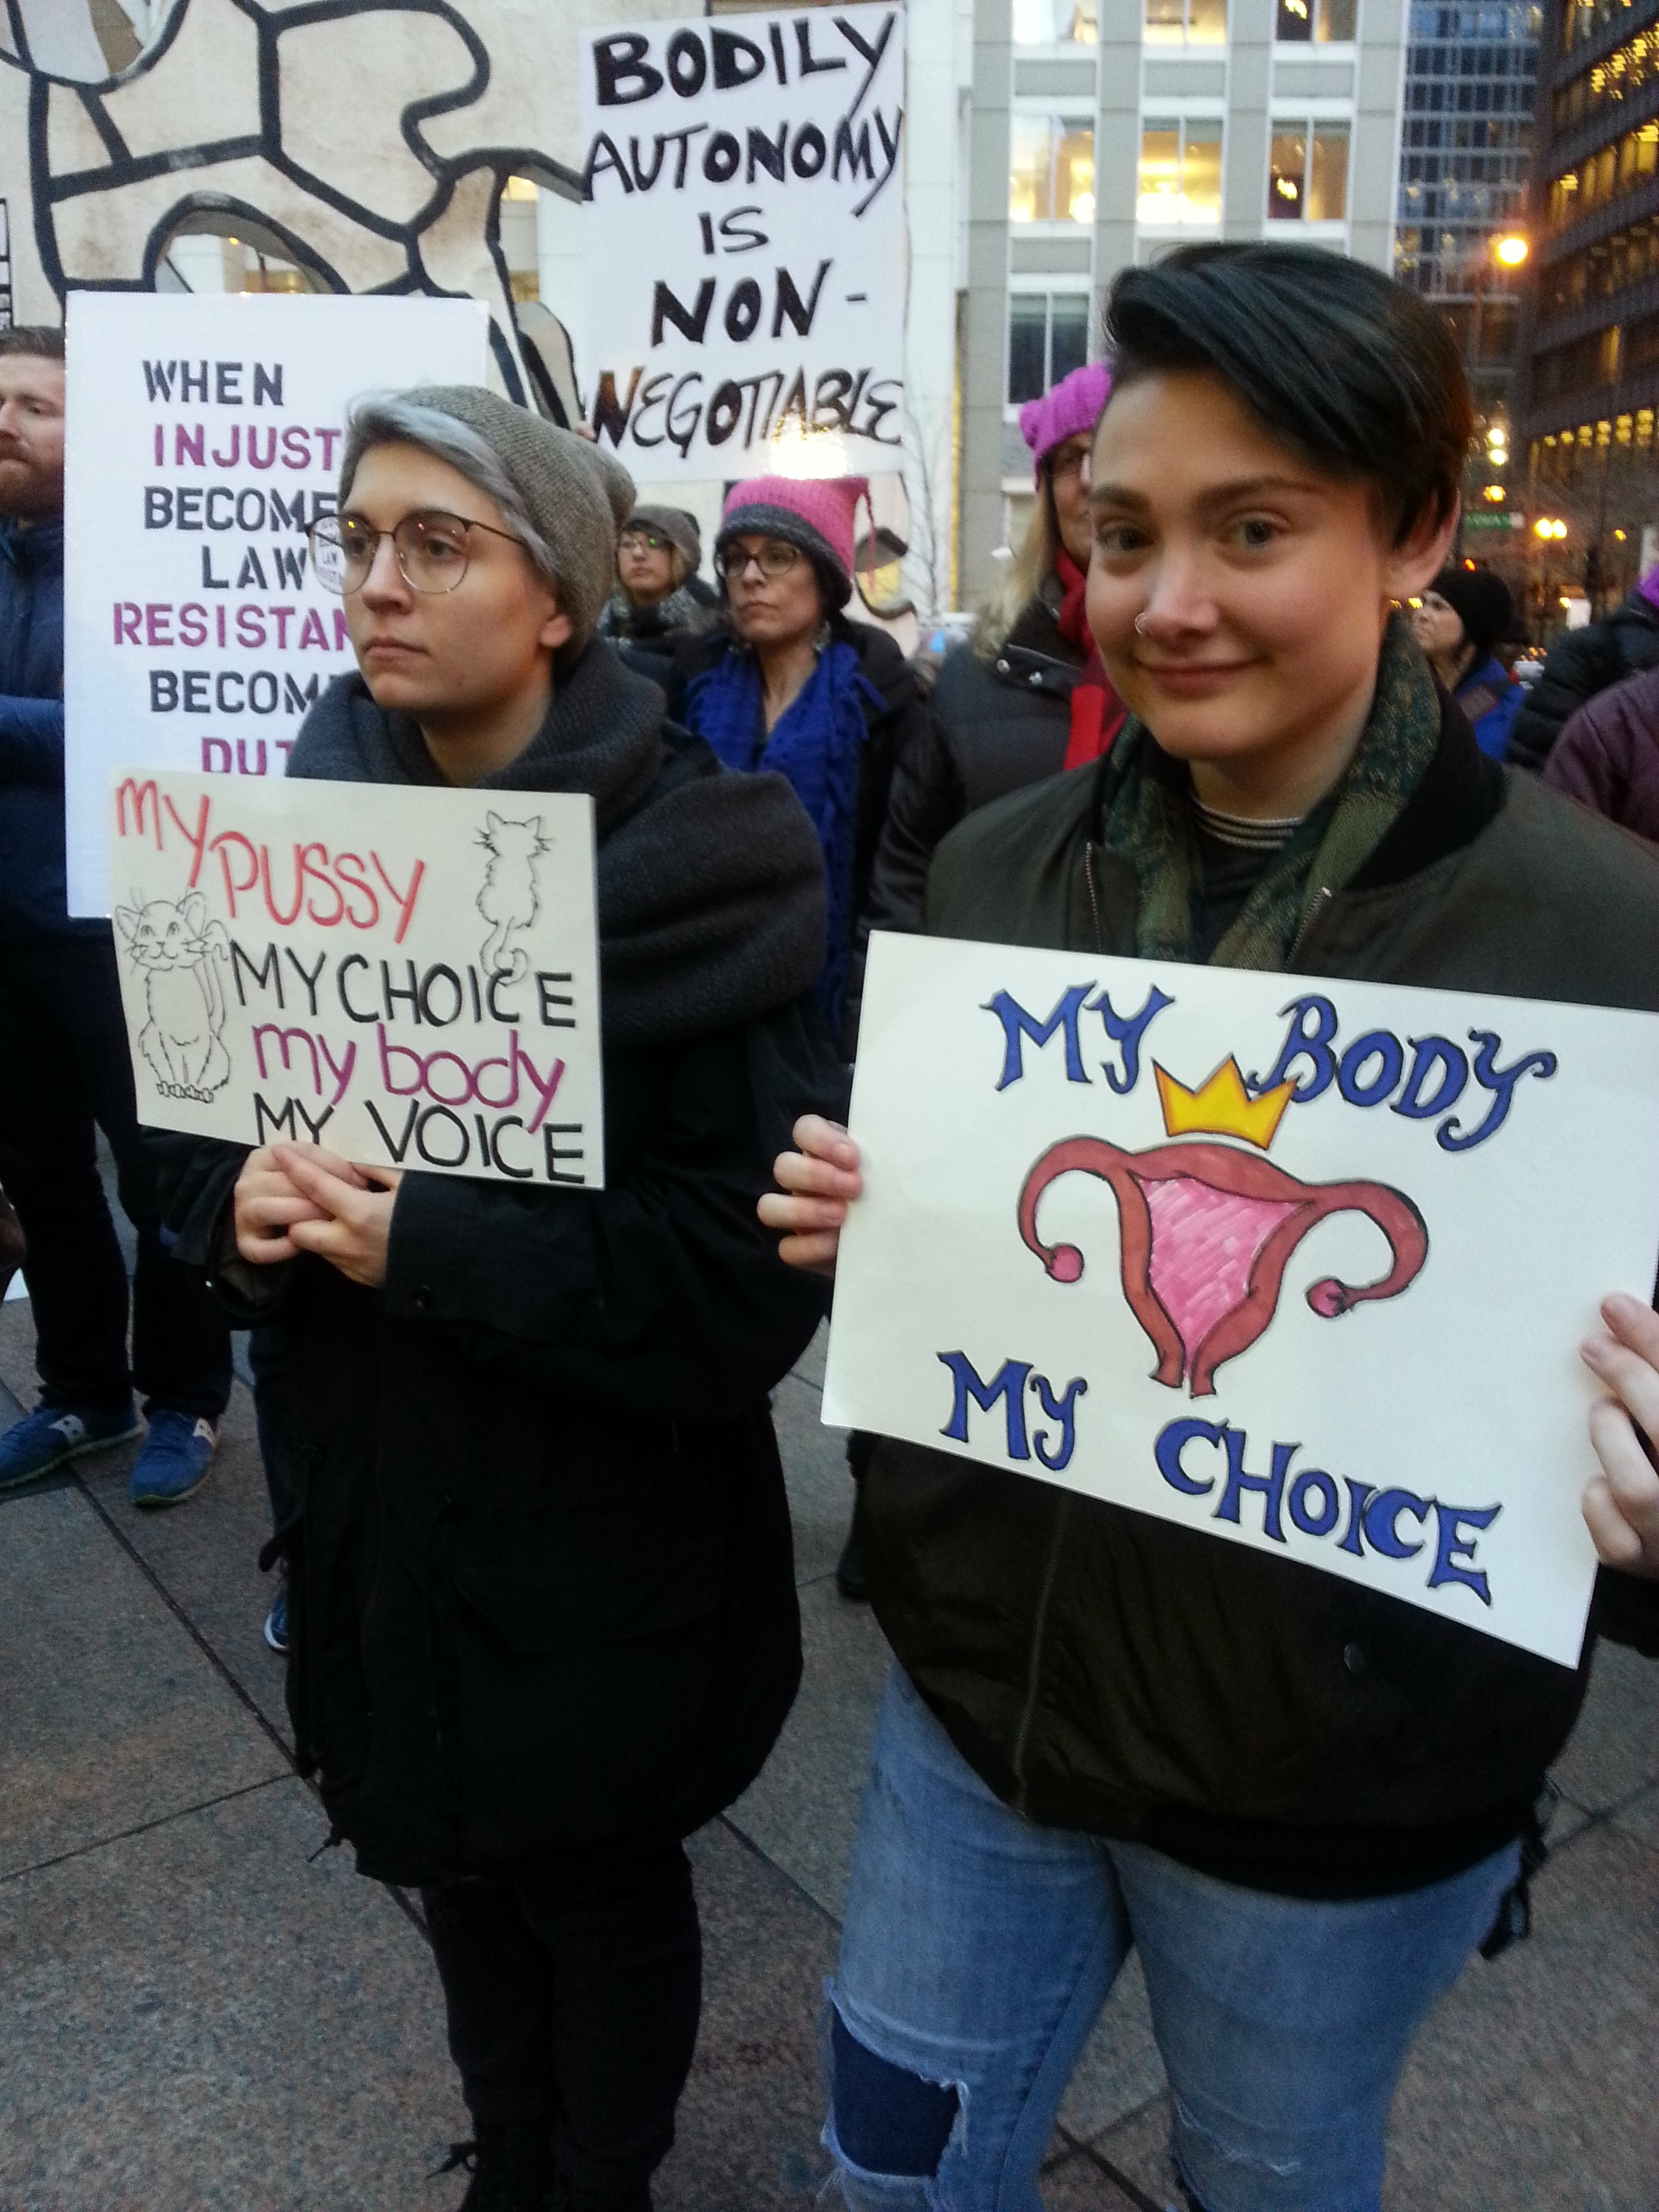 Women protesting for abortion rights in Chicago